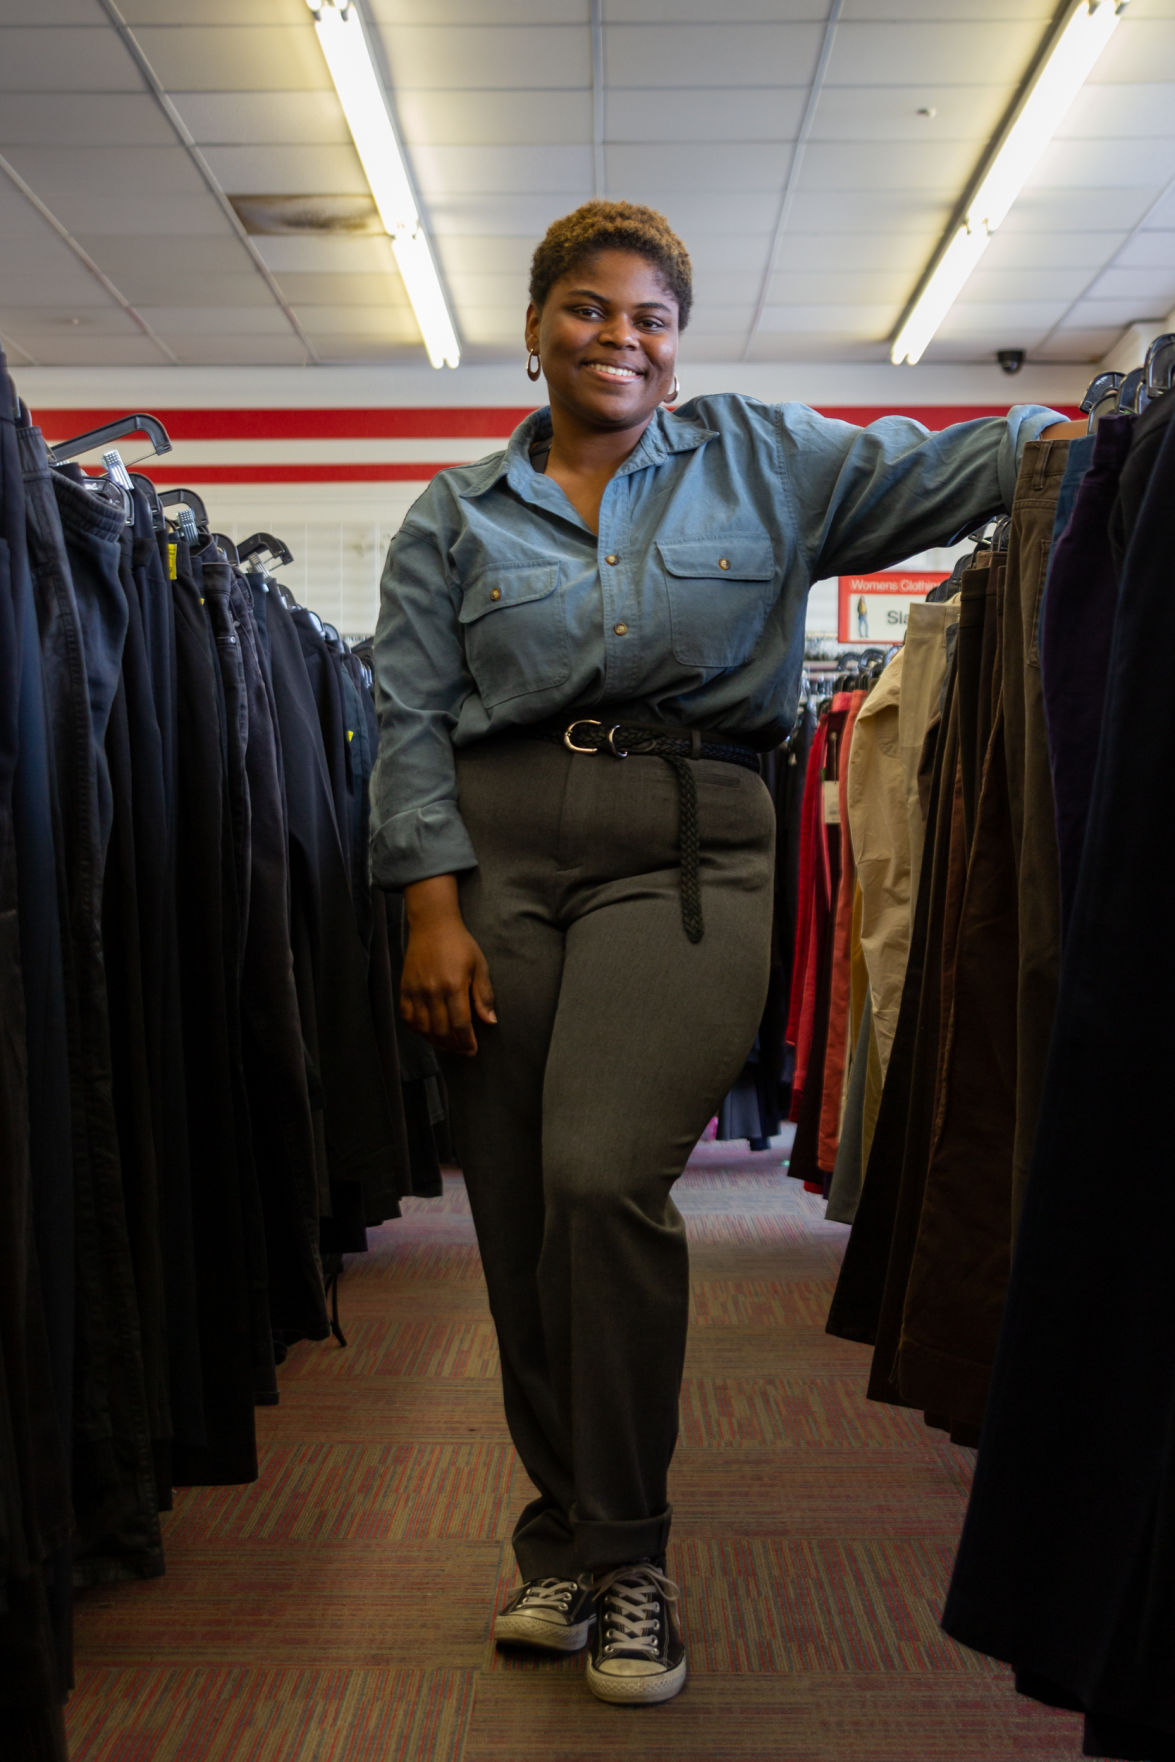 Alumna establishes a stand-out style through thrifting